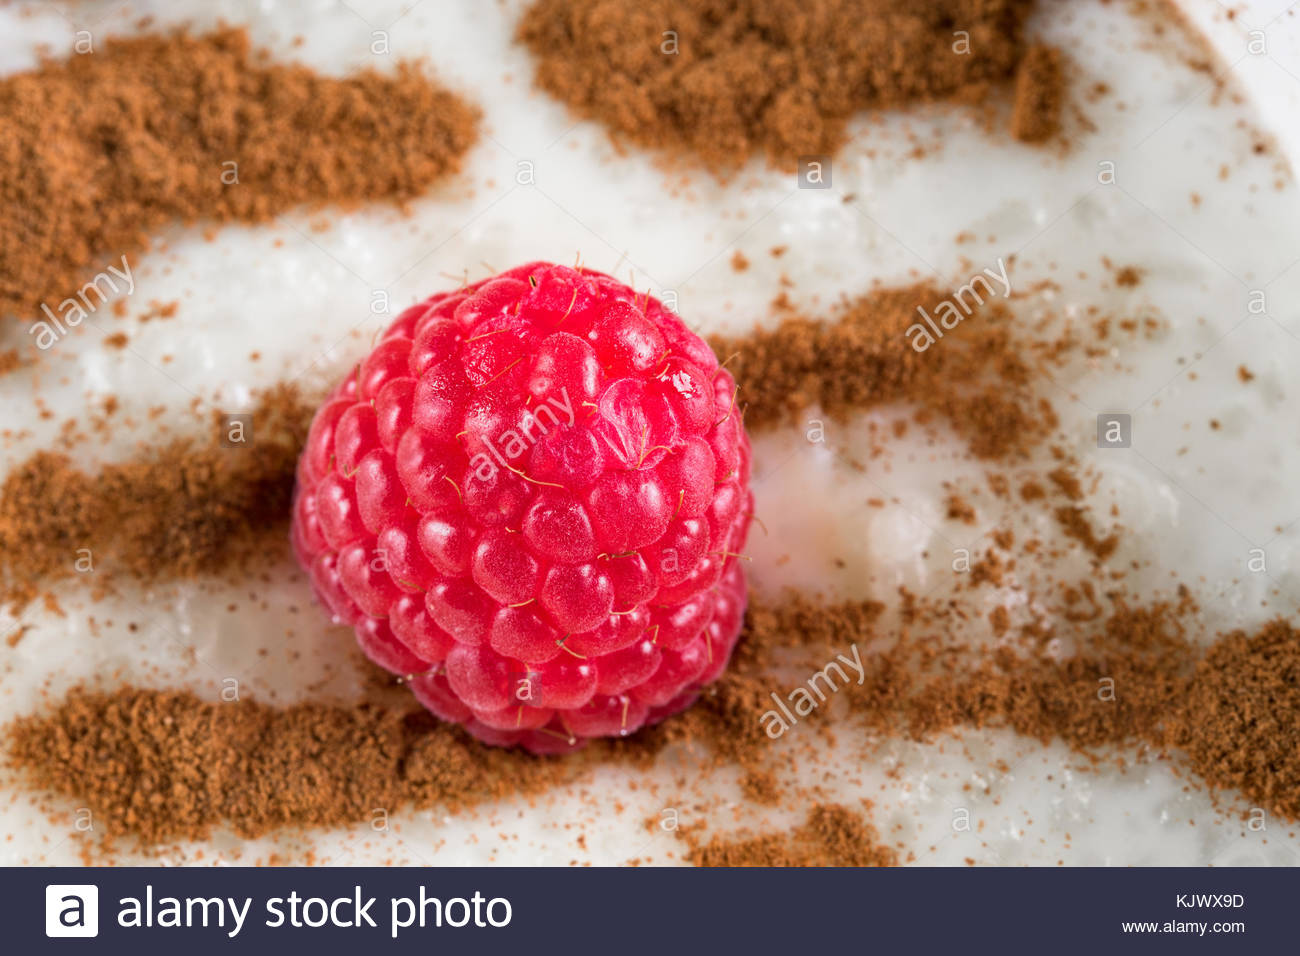 Rice pudding dessert or sweet food. The dish is made from rice mixed with milk and other ingredients such as cinnamon - Stock Image